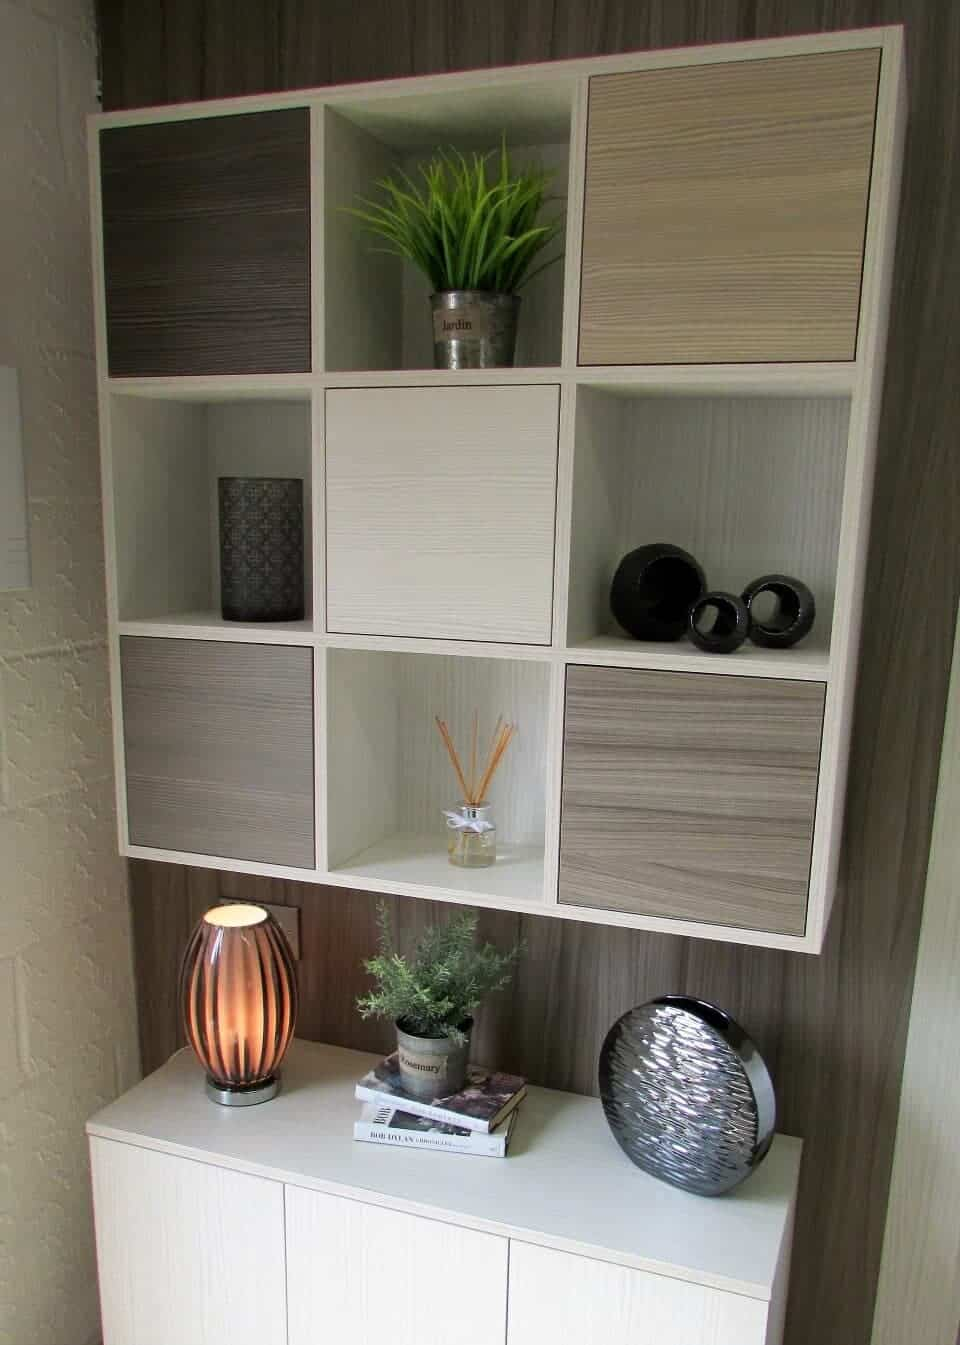 Box shelving in textured woodgrain.